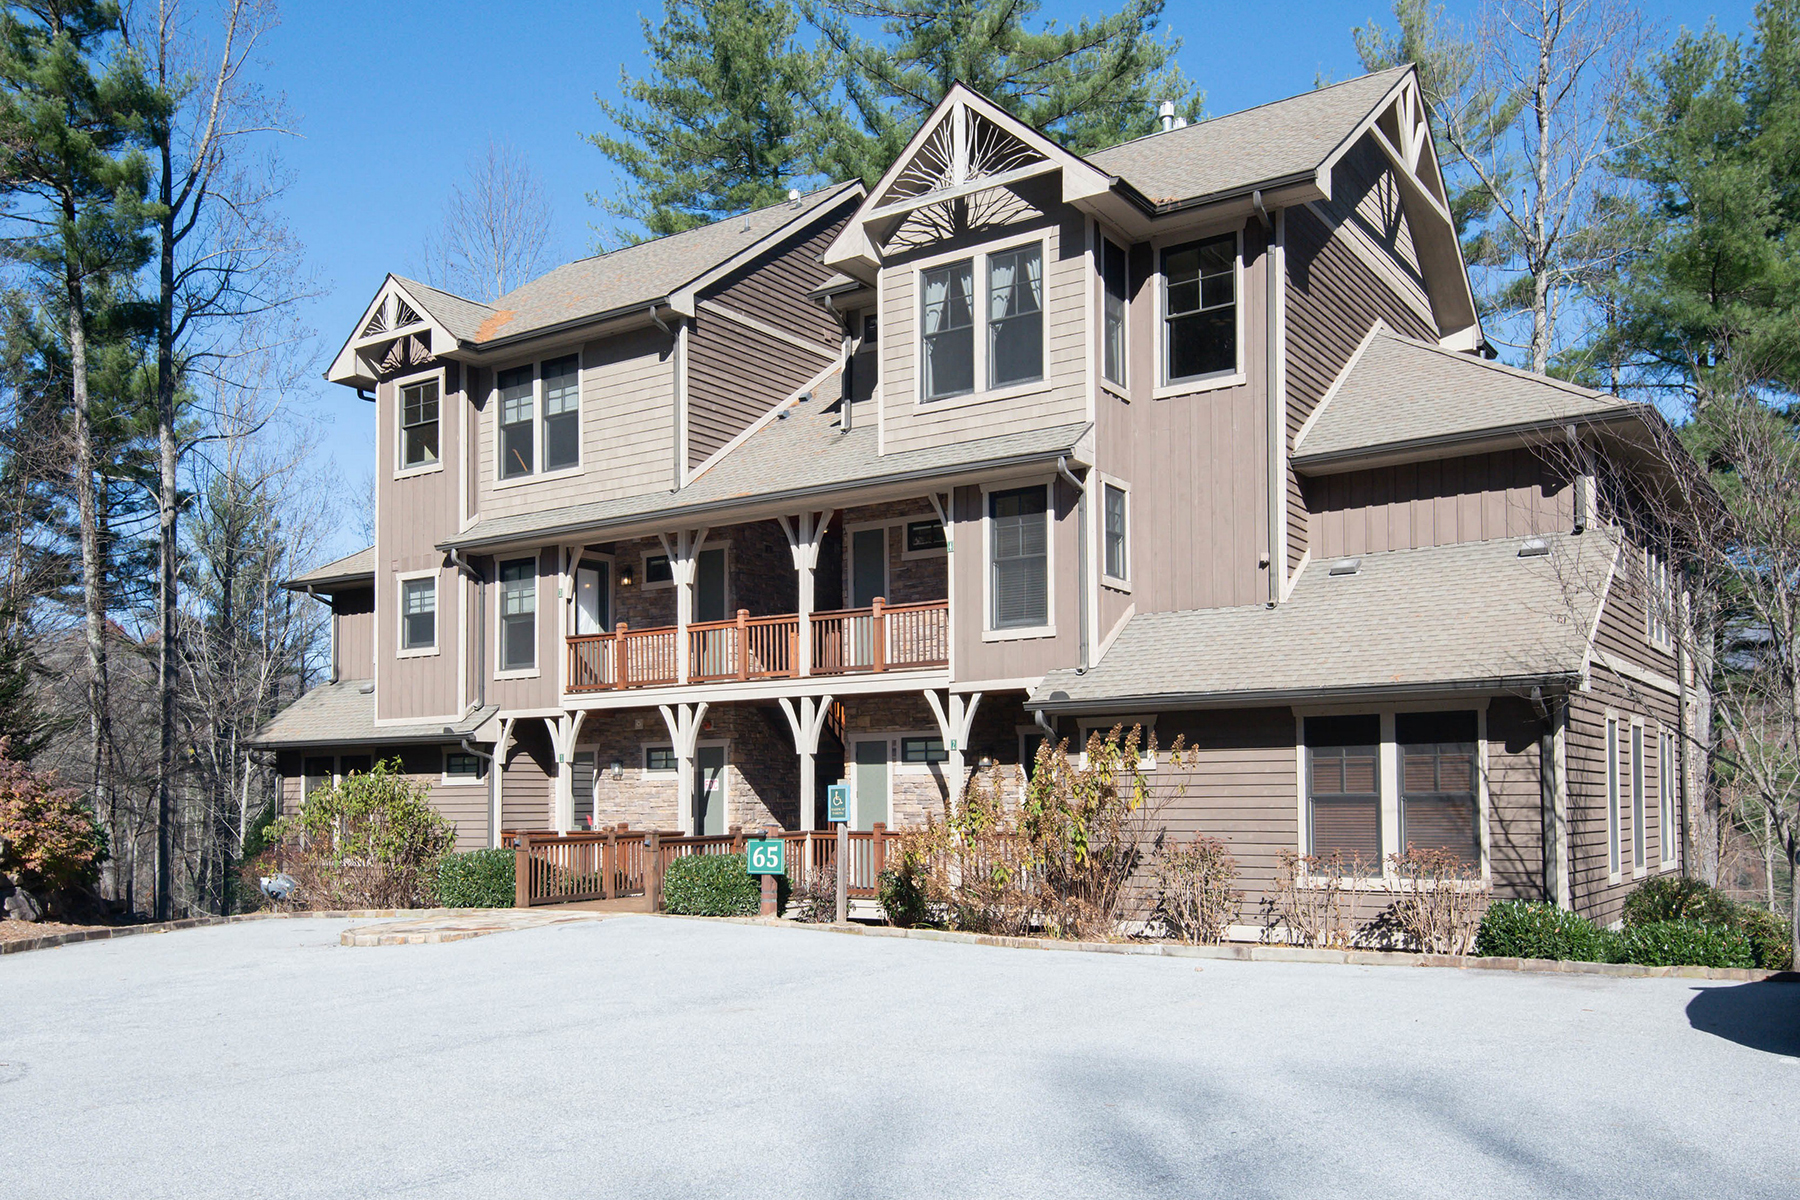 Condominiums for Sale at BEAR LAKE RESERVE 65 Southshore Dr Tuckasegee, North Carolina 28783 United States